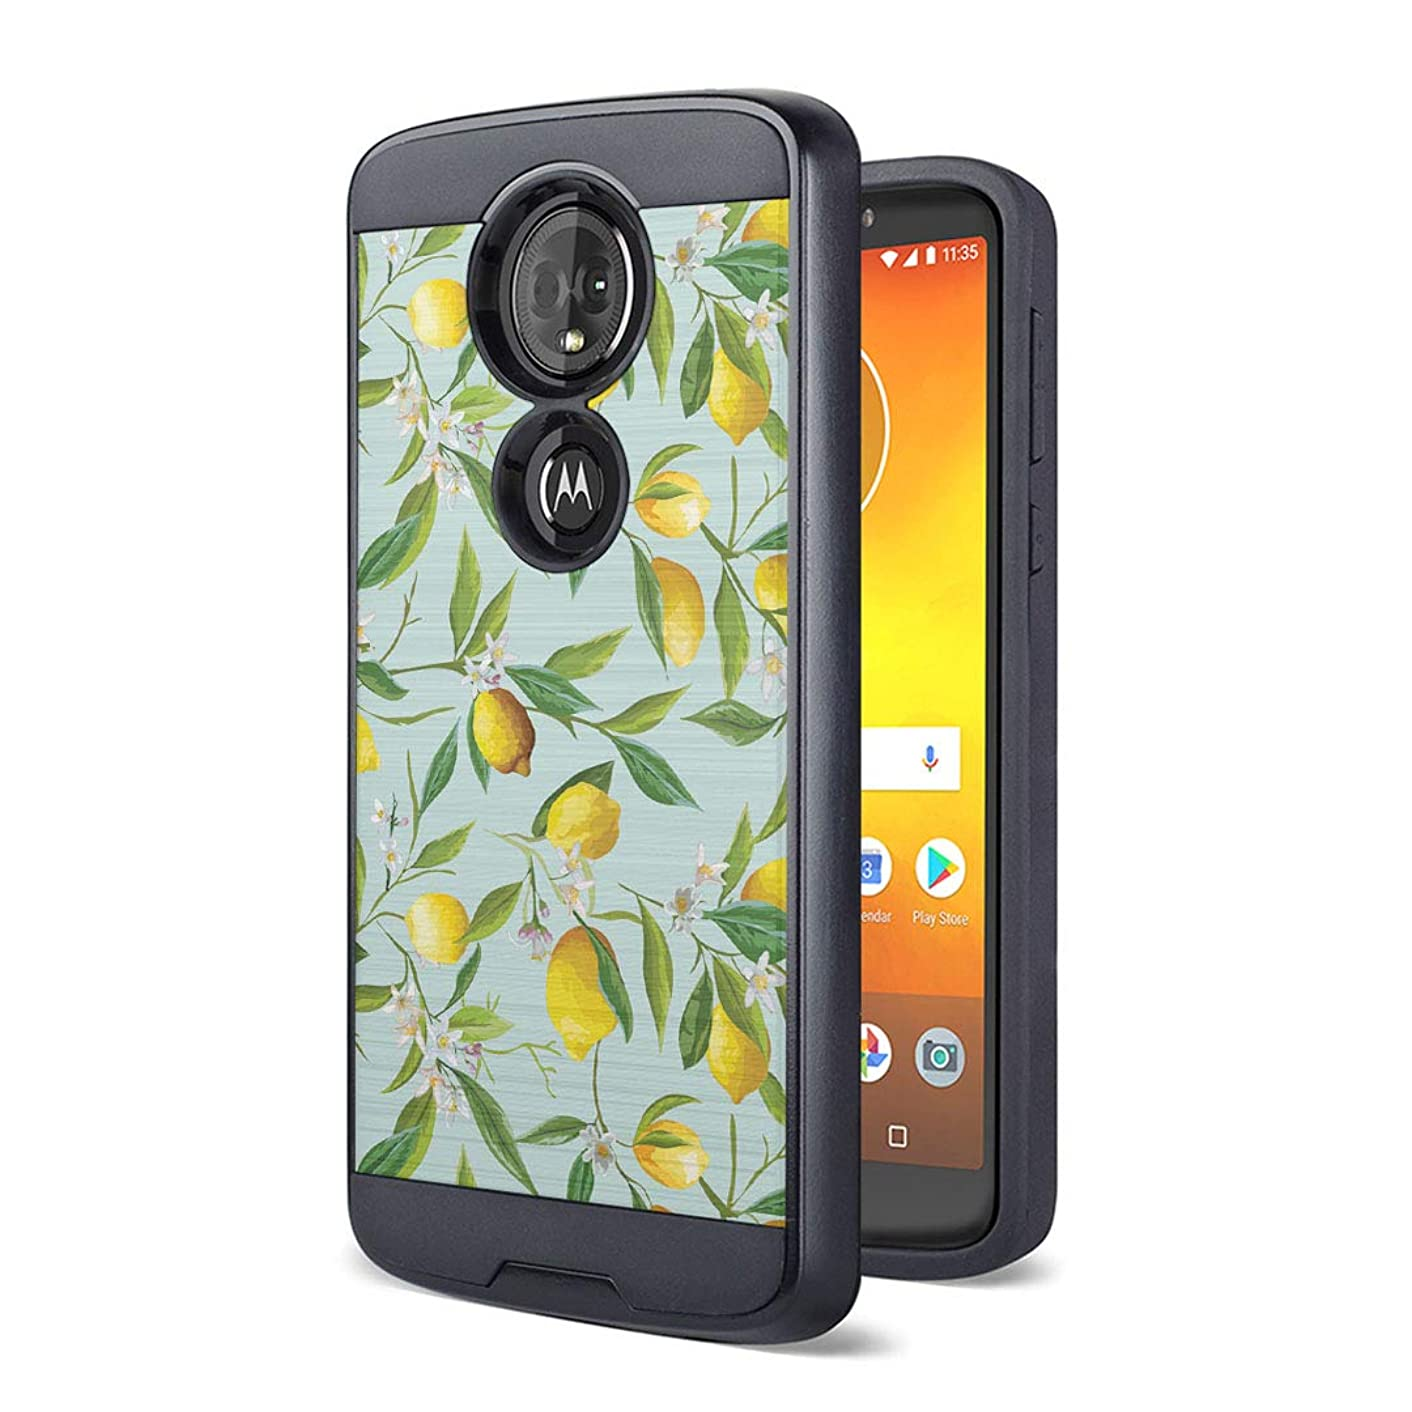 Moriko Case Compatible with Moto G7 Power, Moto G7 Supra [Drop Protection Fusion Dual Layer Slick Armor Case Black] for Motorola Moto G7 Power - (Summer Lemon)